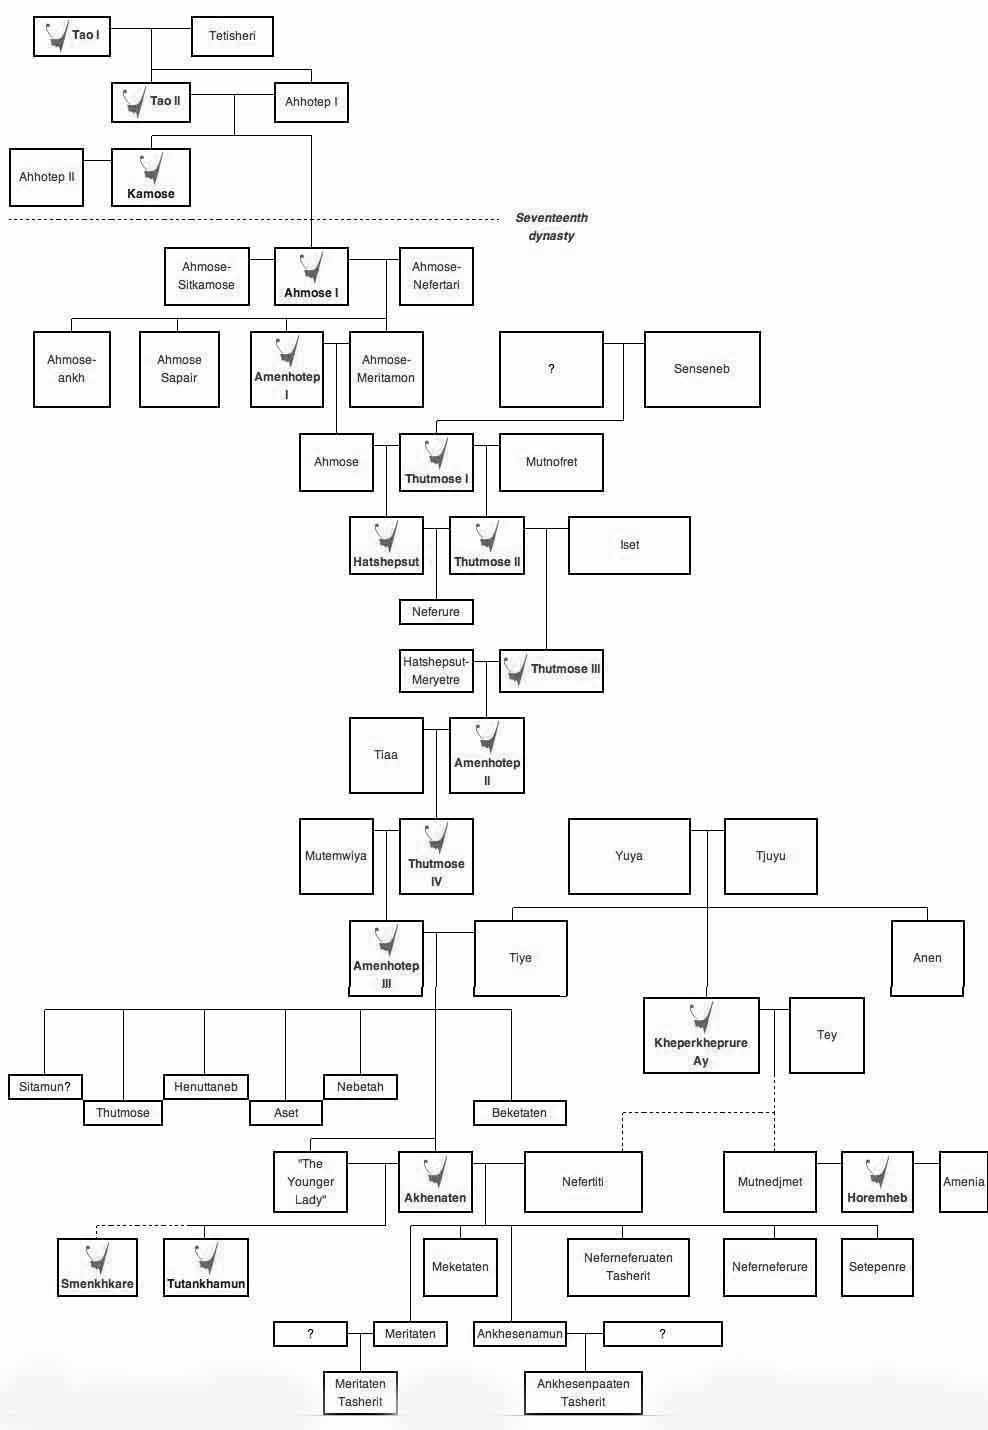 Bloodline of XVIII Dynasty